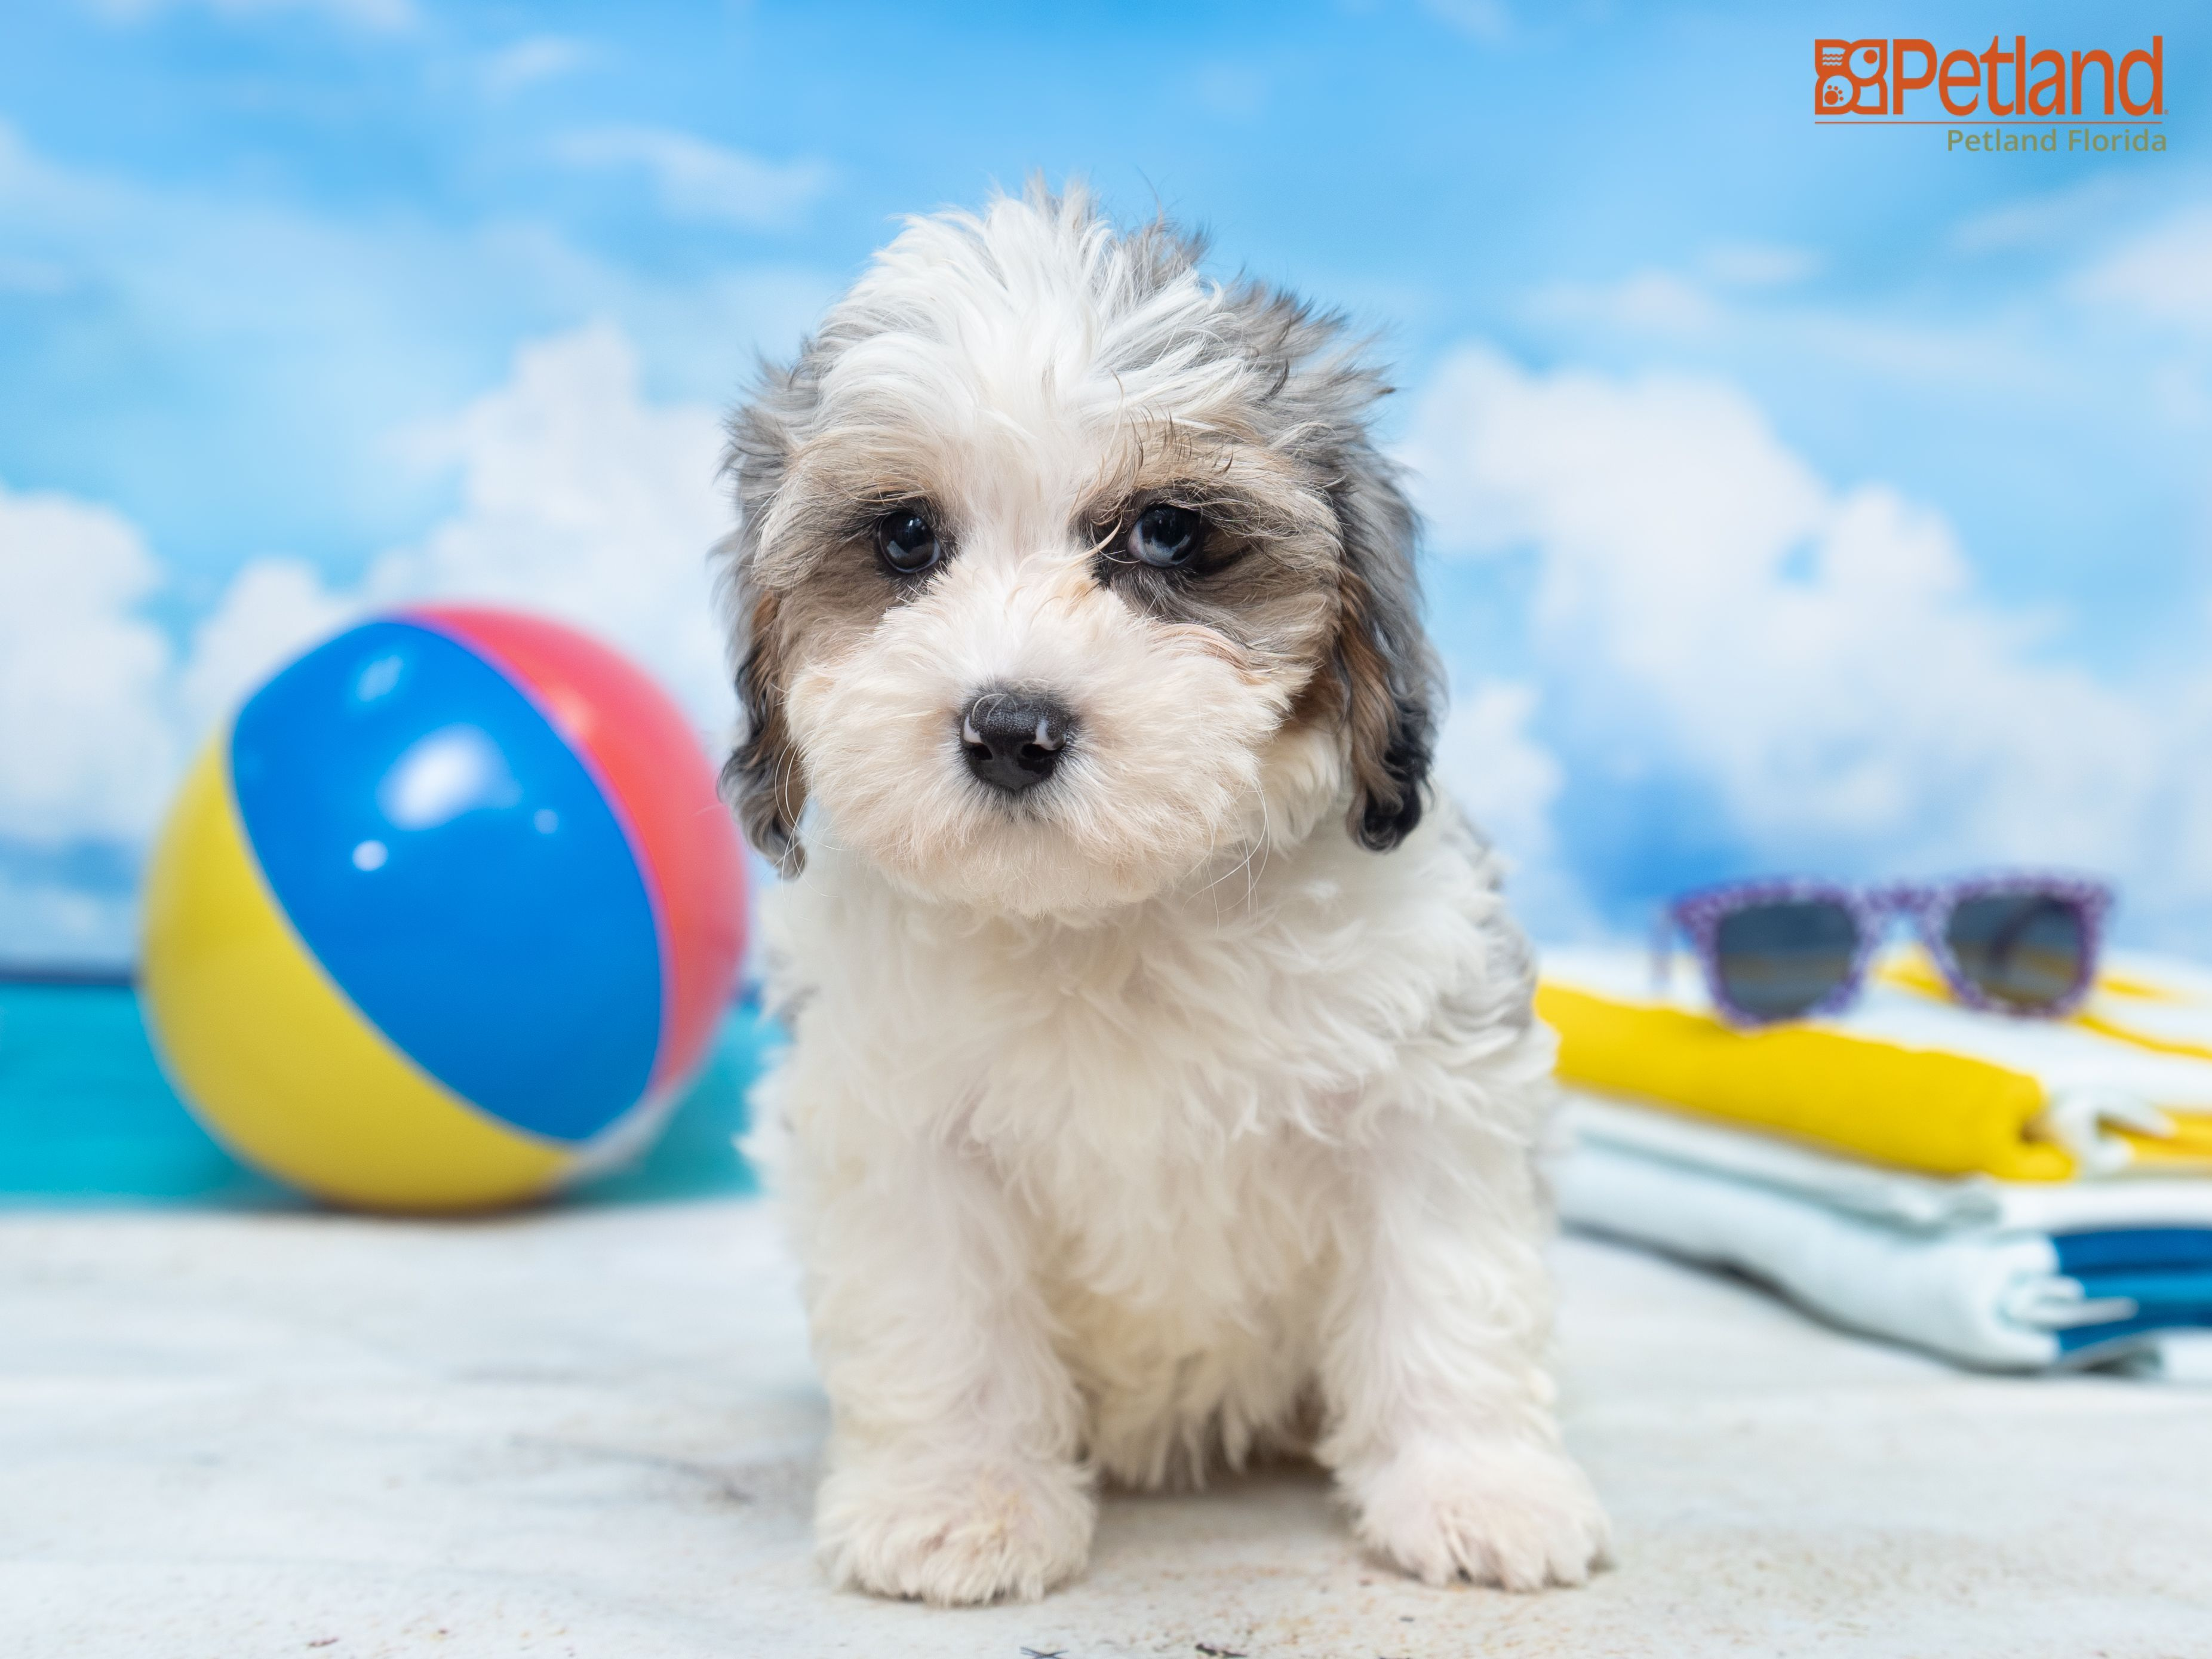 Puppies For Sale Petland Florida In 2020 Puppy Friends Dog Lovers Puppies